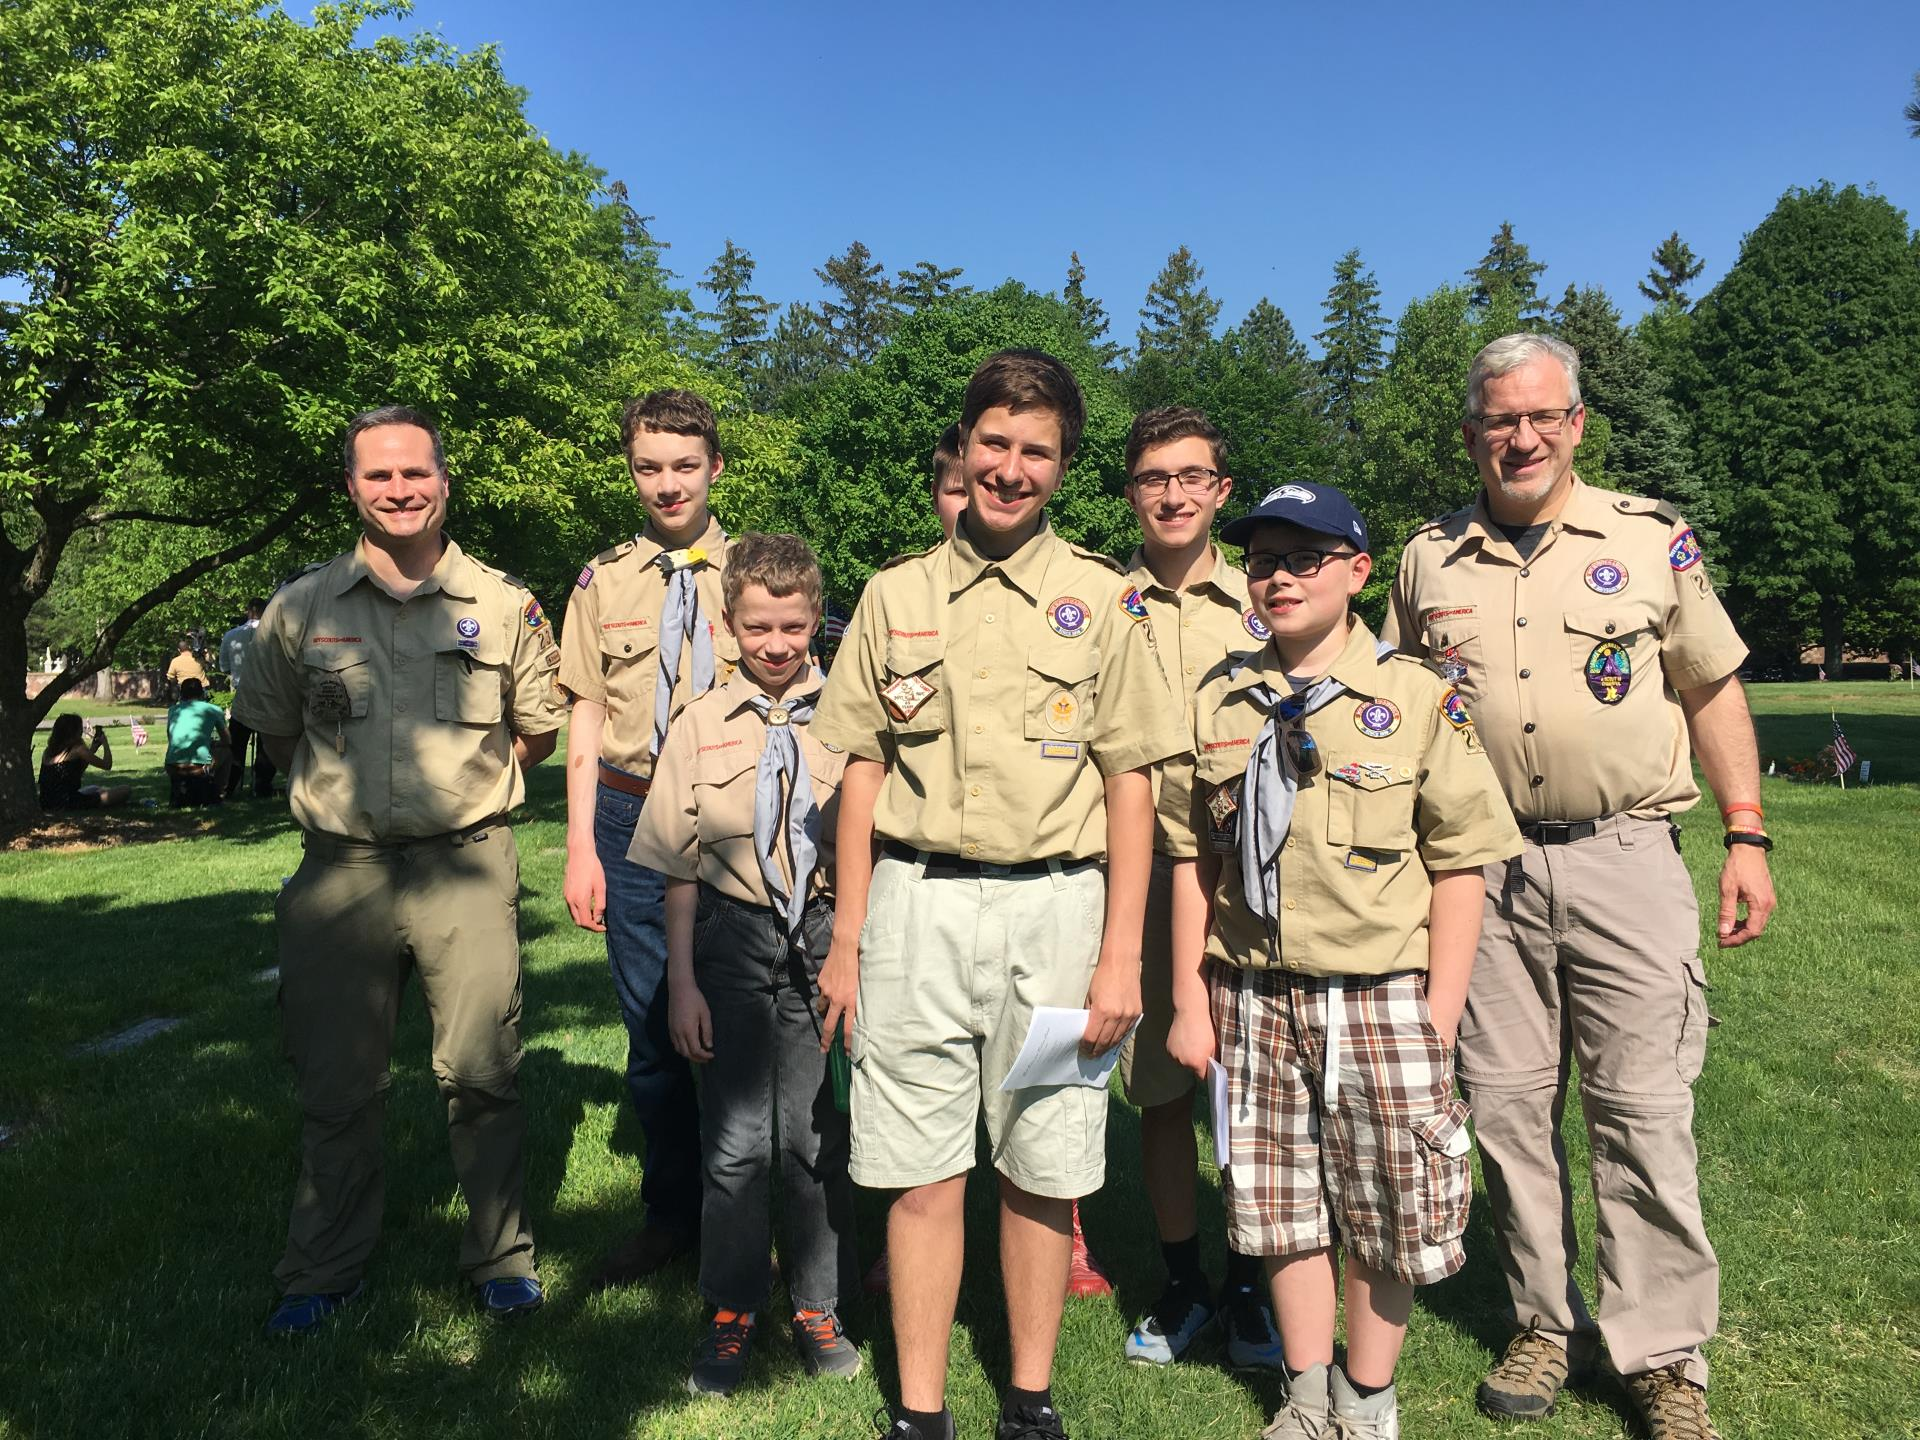 a group of Boy scouts touring the cemetery